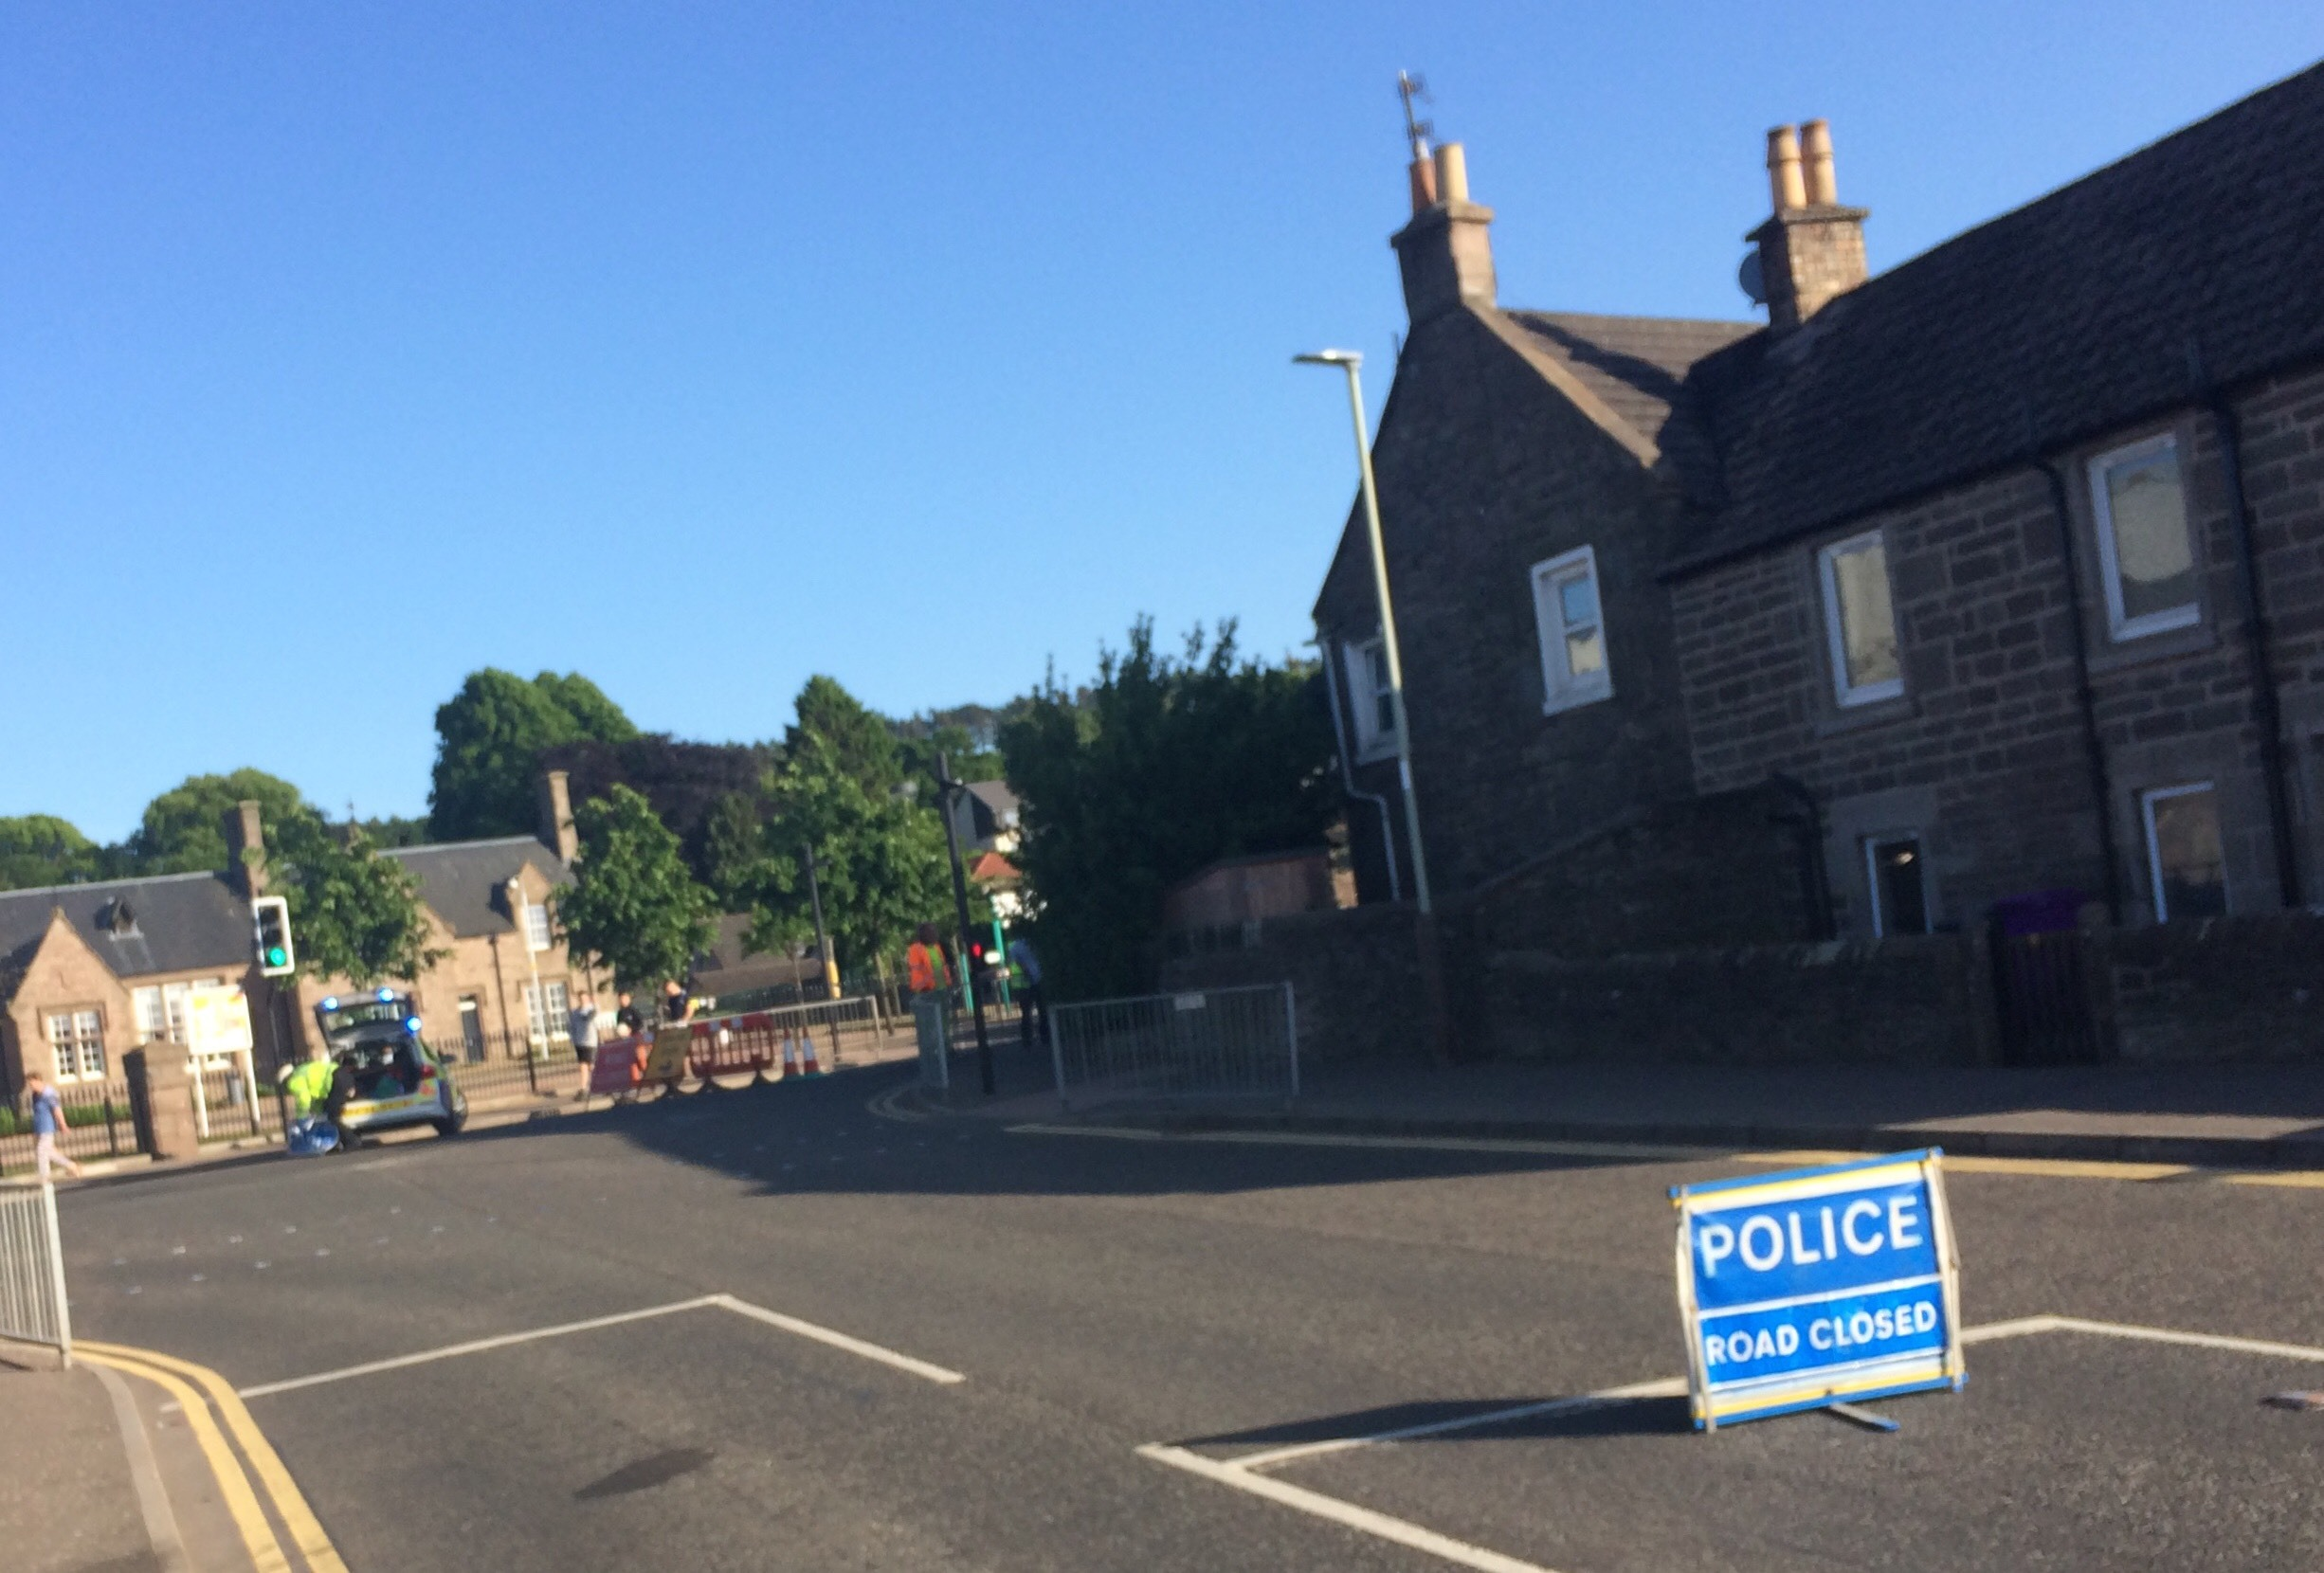 The road remained closed for several hours